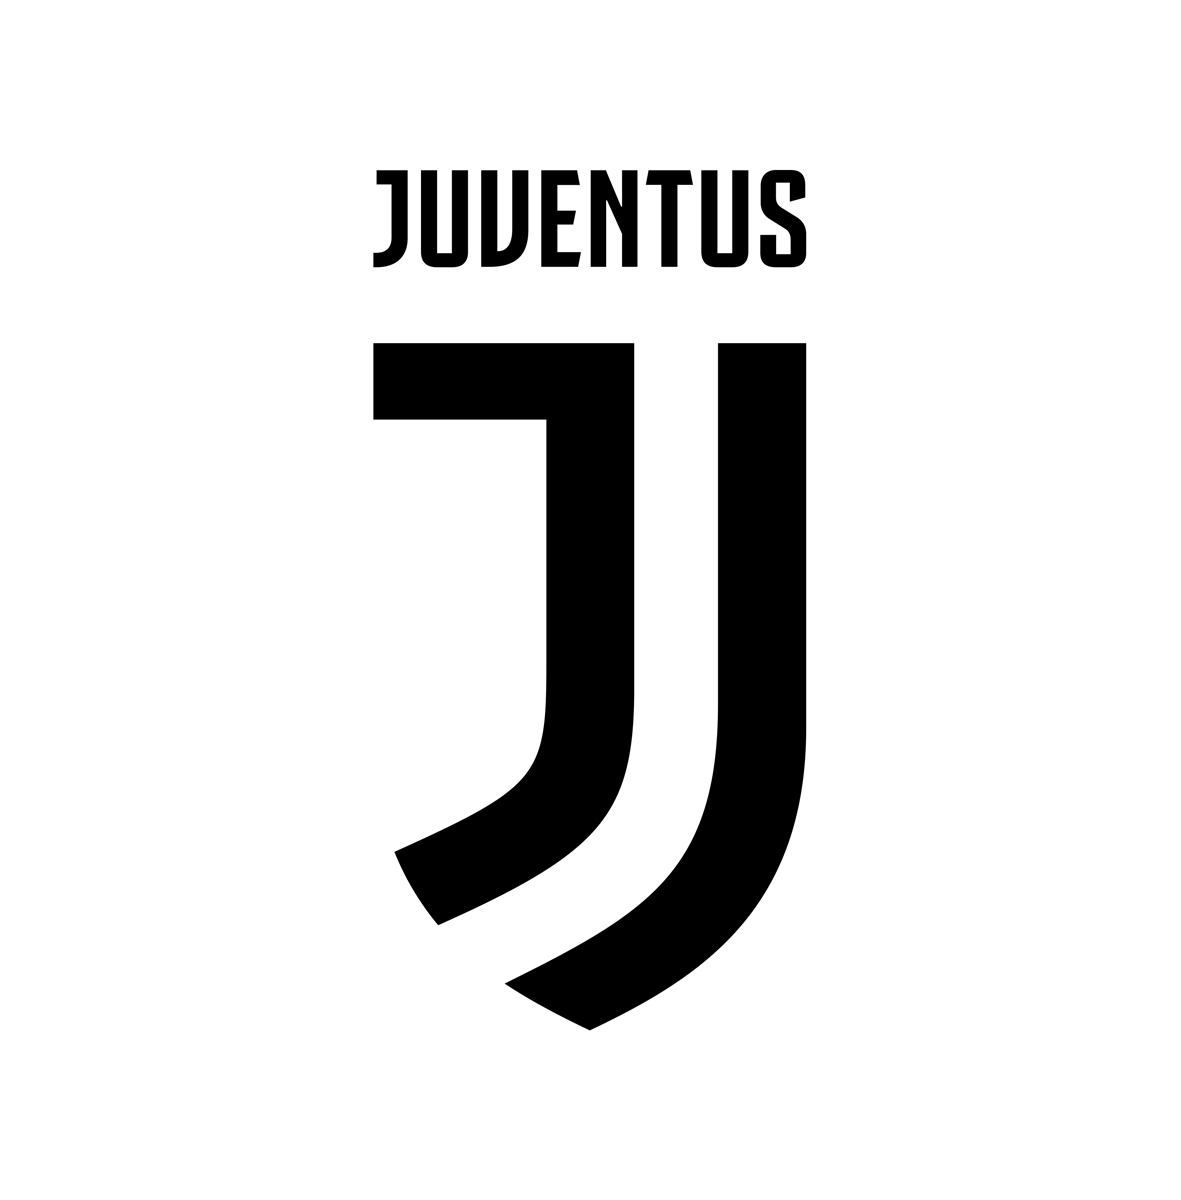 Juventus Launch New Logo To Go Beyond Football Will It Take Them There Creative Review